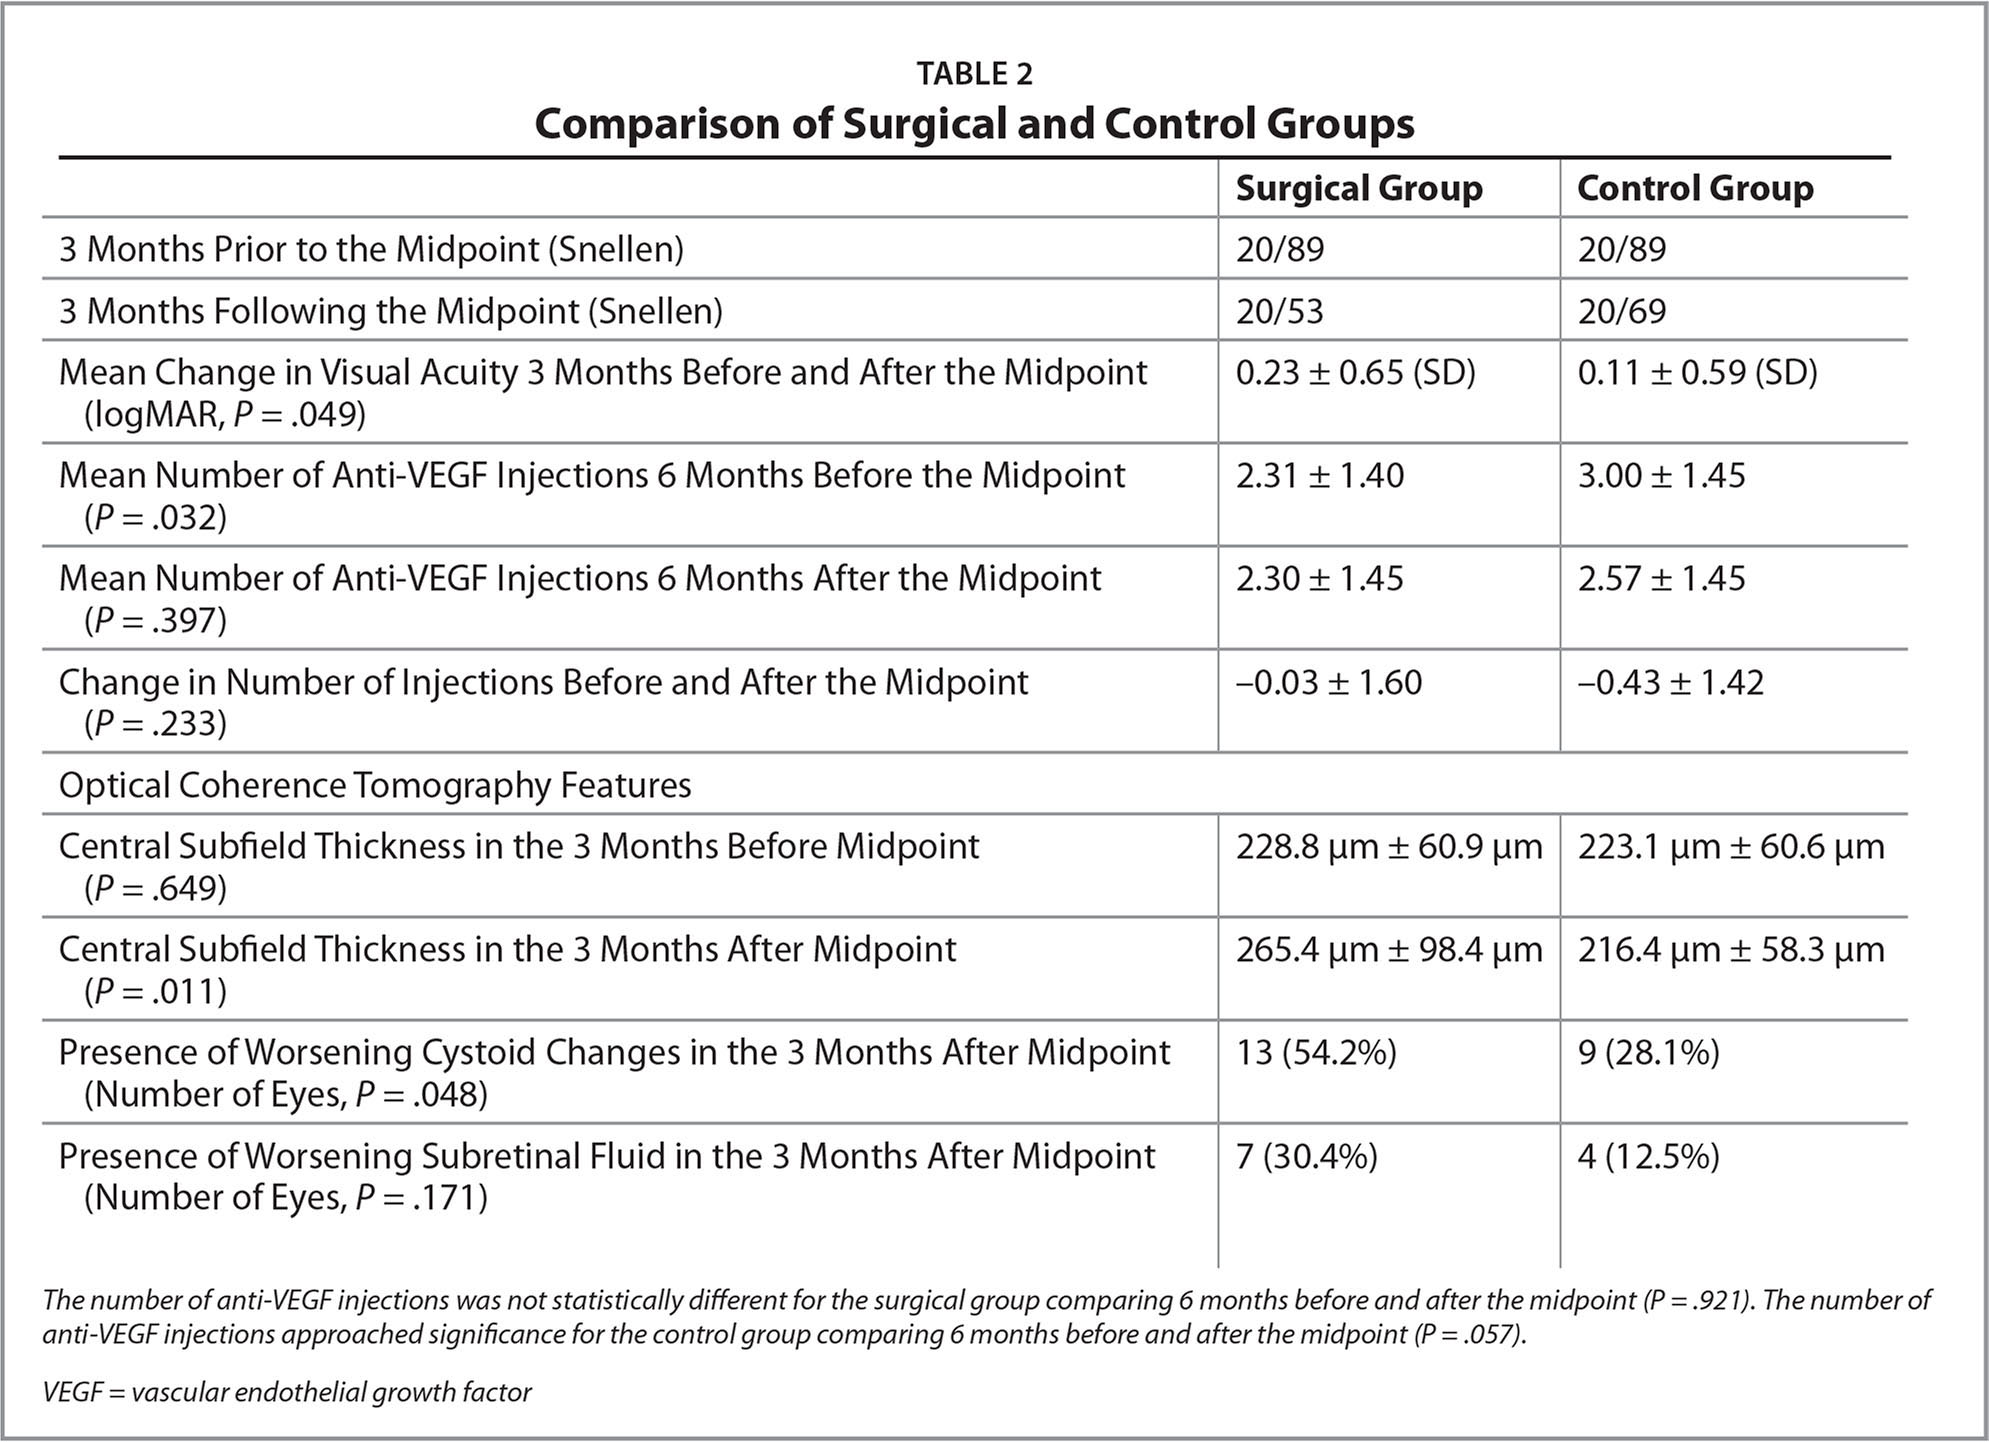 Cataract Surgery in Patients With Wet Macular Degeneration